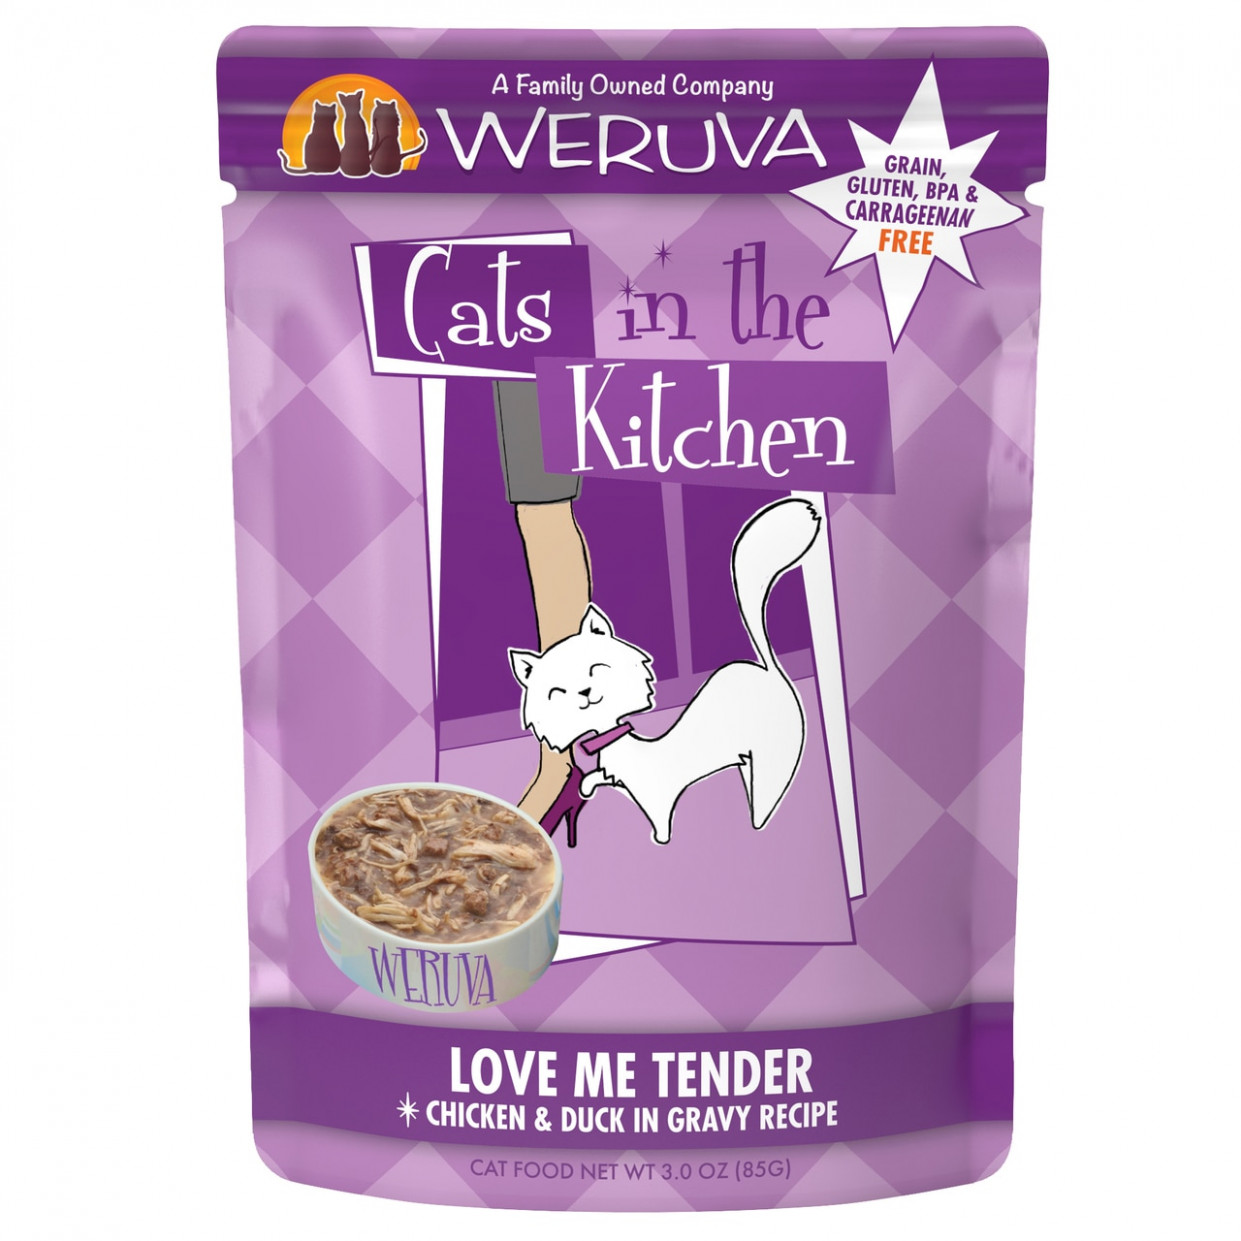 Cats In The Kitchen Love Me Tender Chicken & Duck In Gravy Recipe Cat Food  Pouch - Homemade Cat Food Recipes